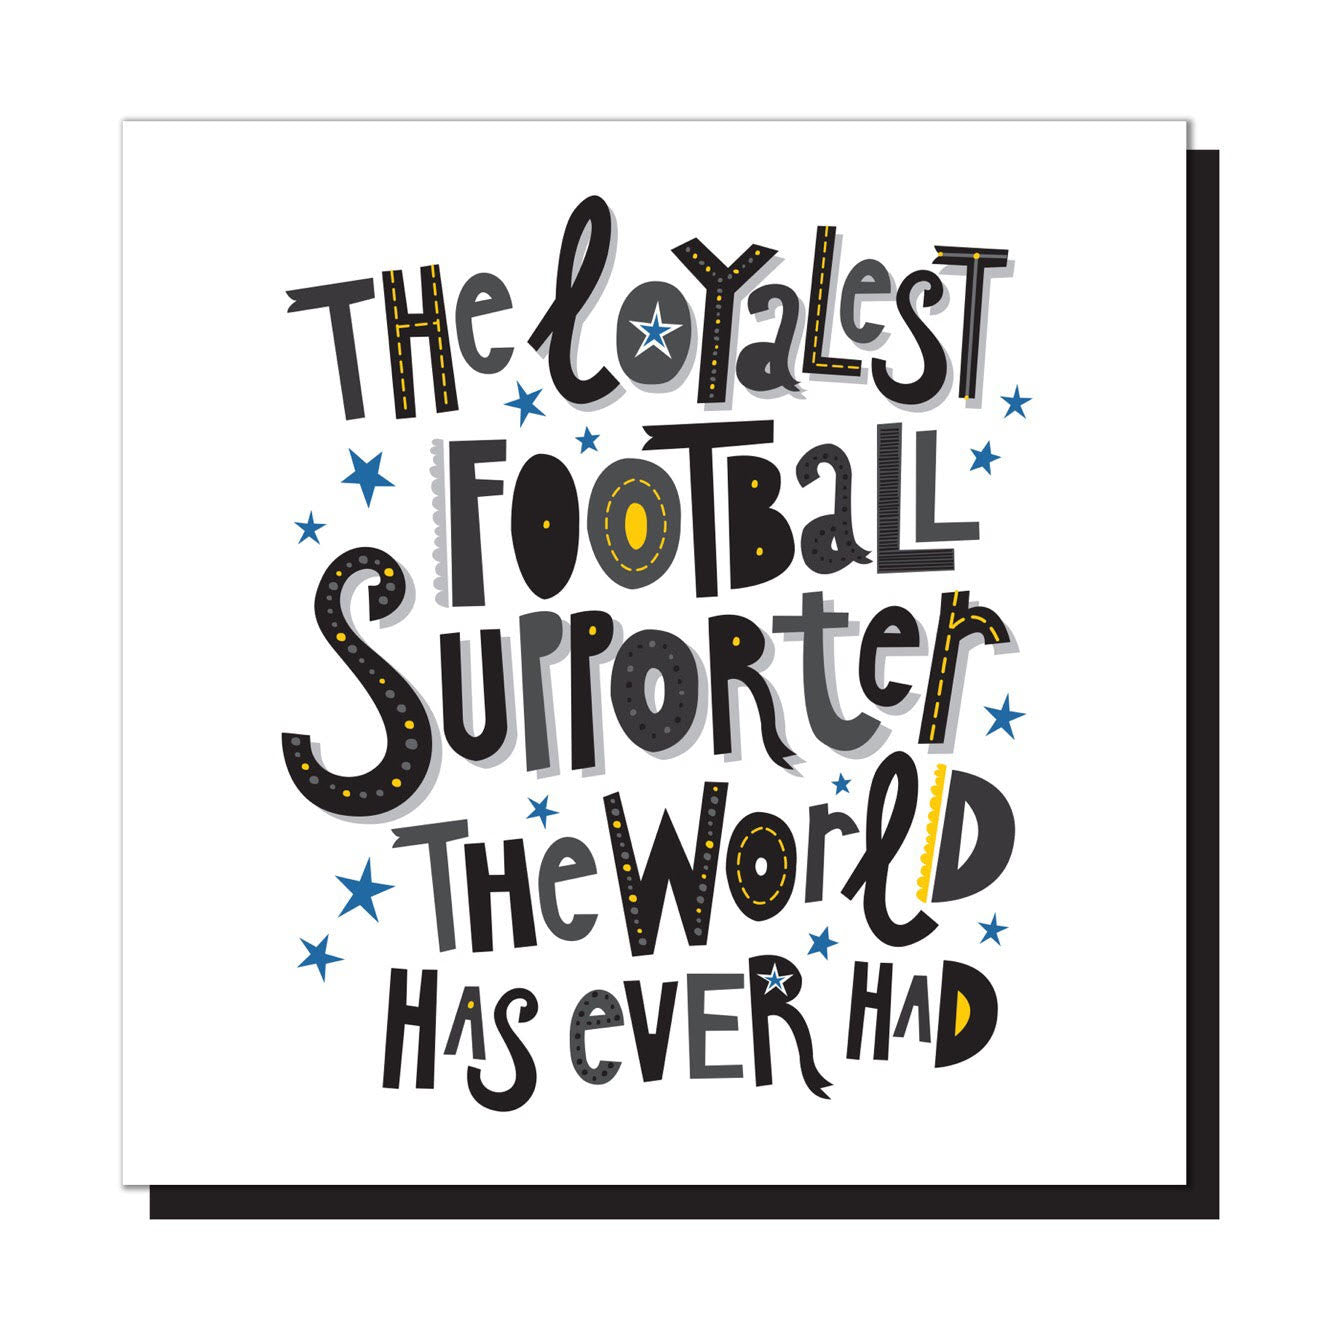 The loyalest football supporter...